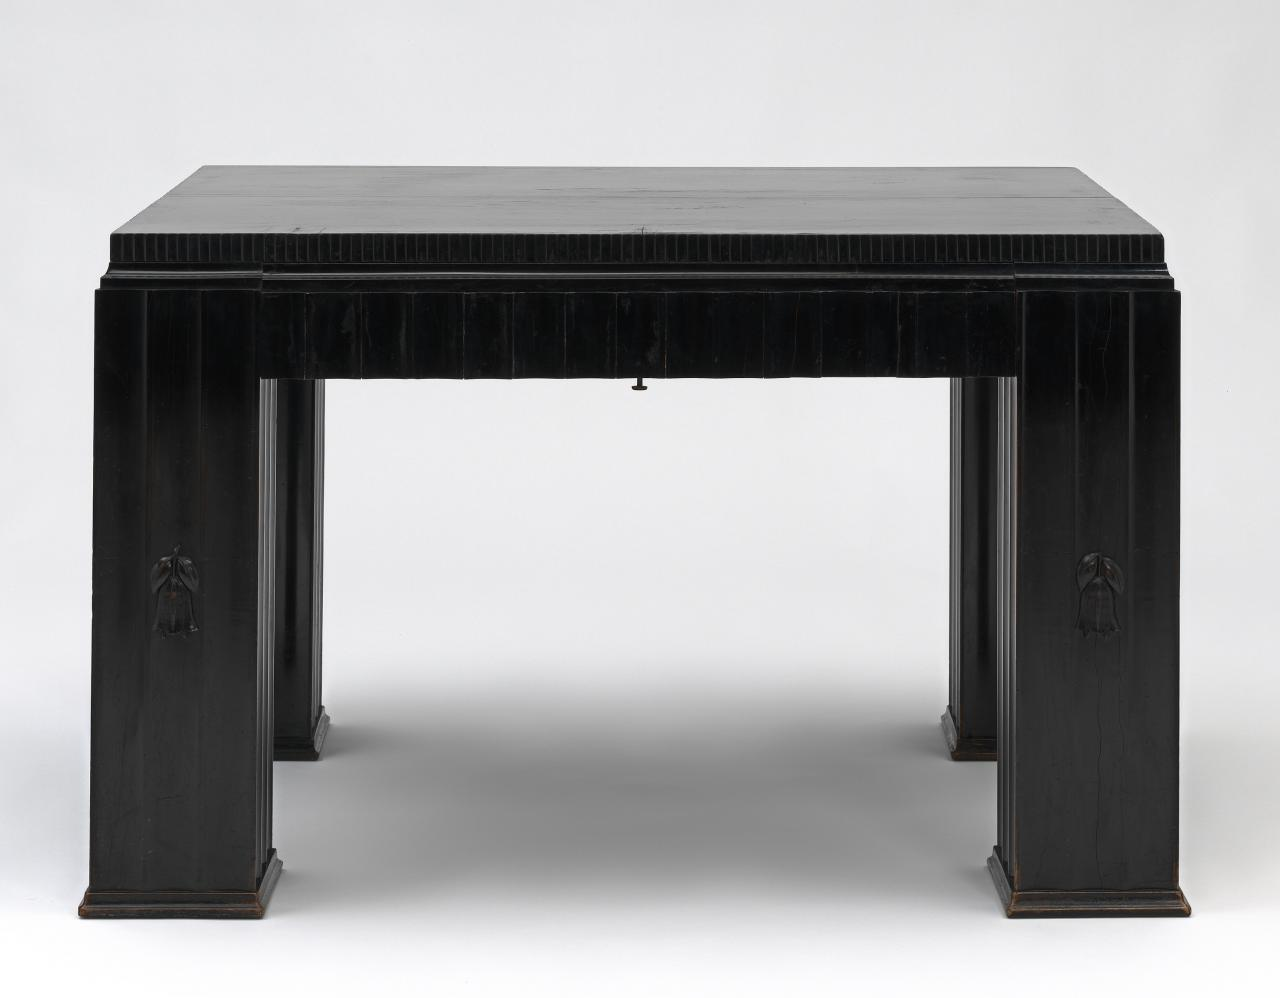 Dining table, from the Gallia apartment hall